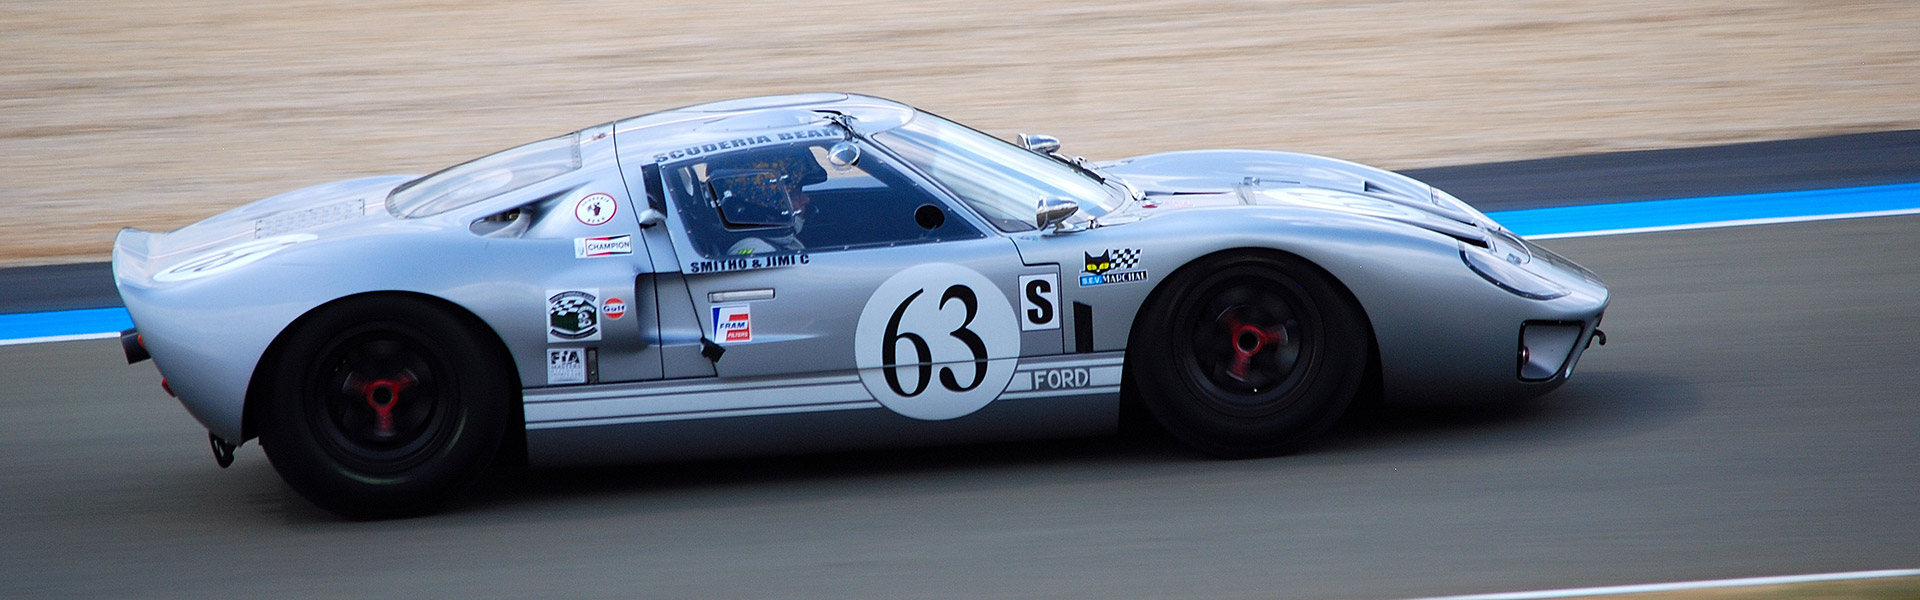 classic-le-mans-gallery-top